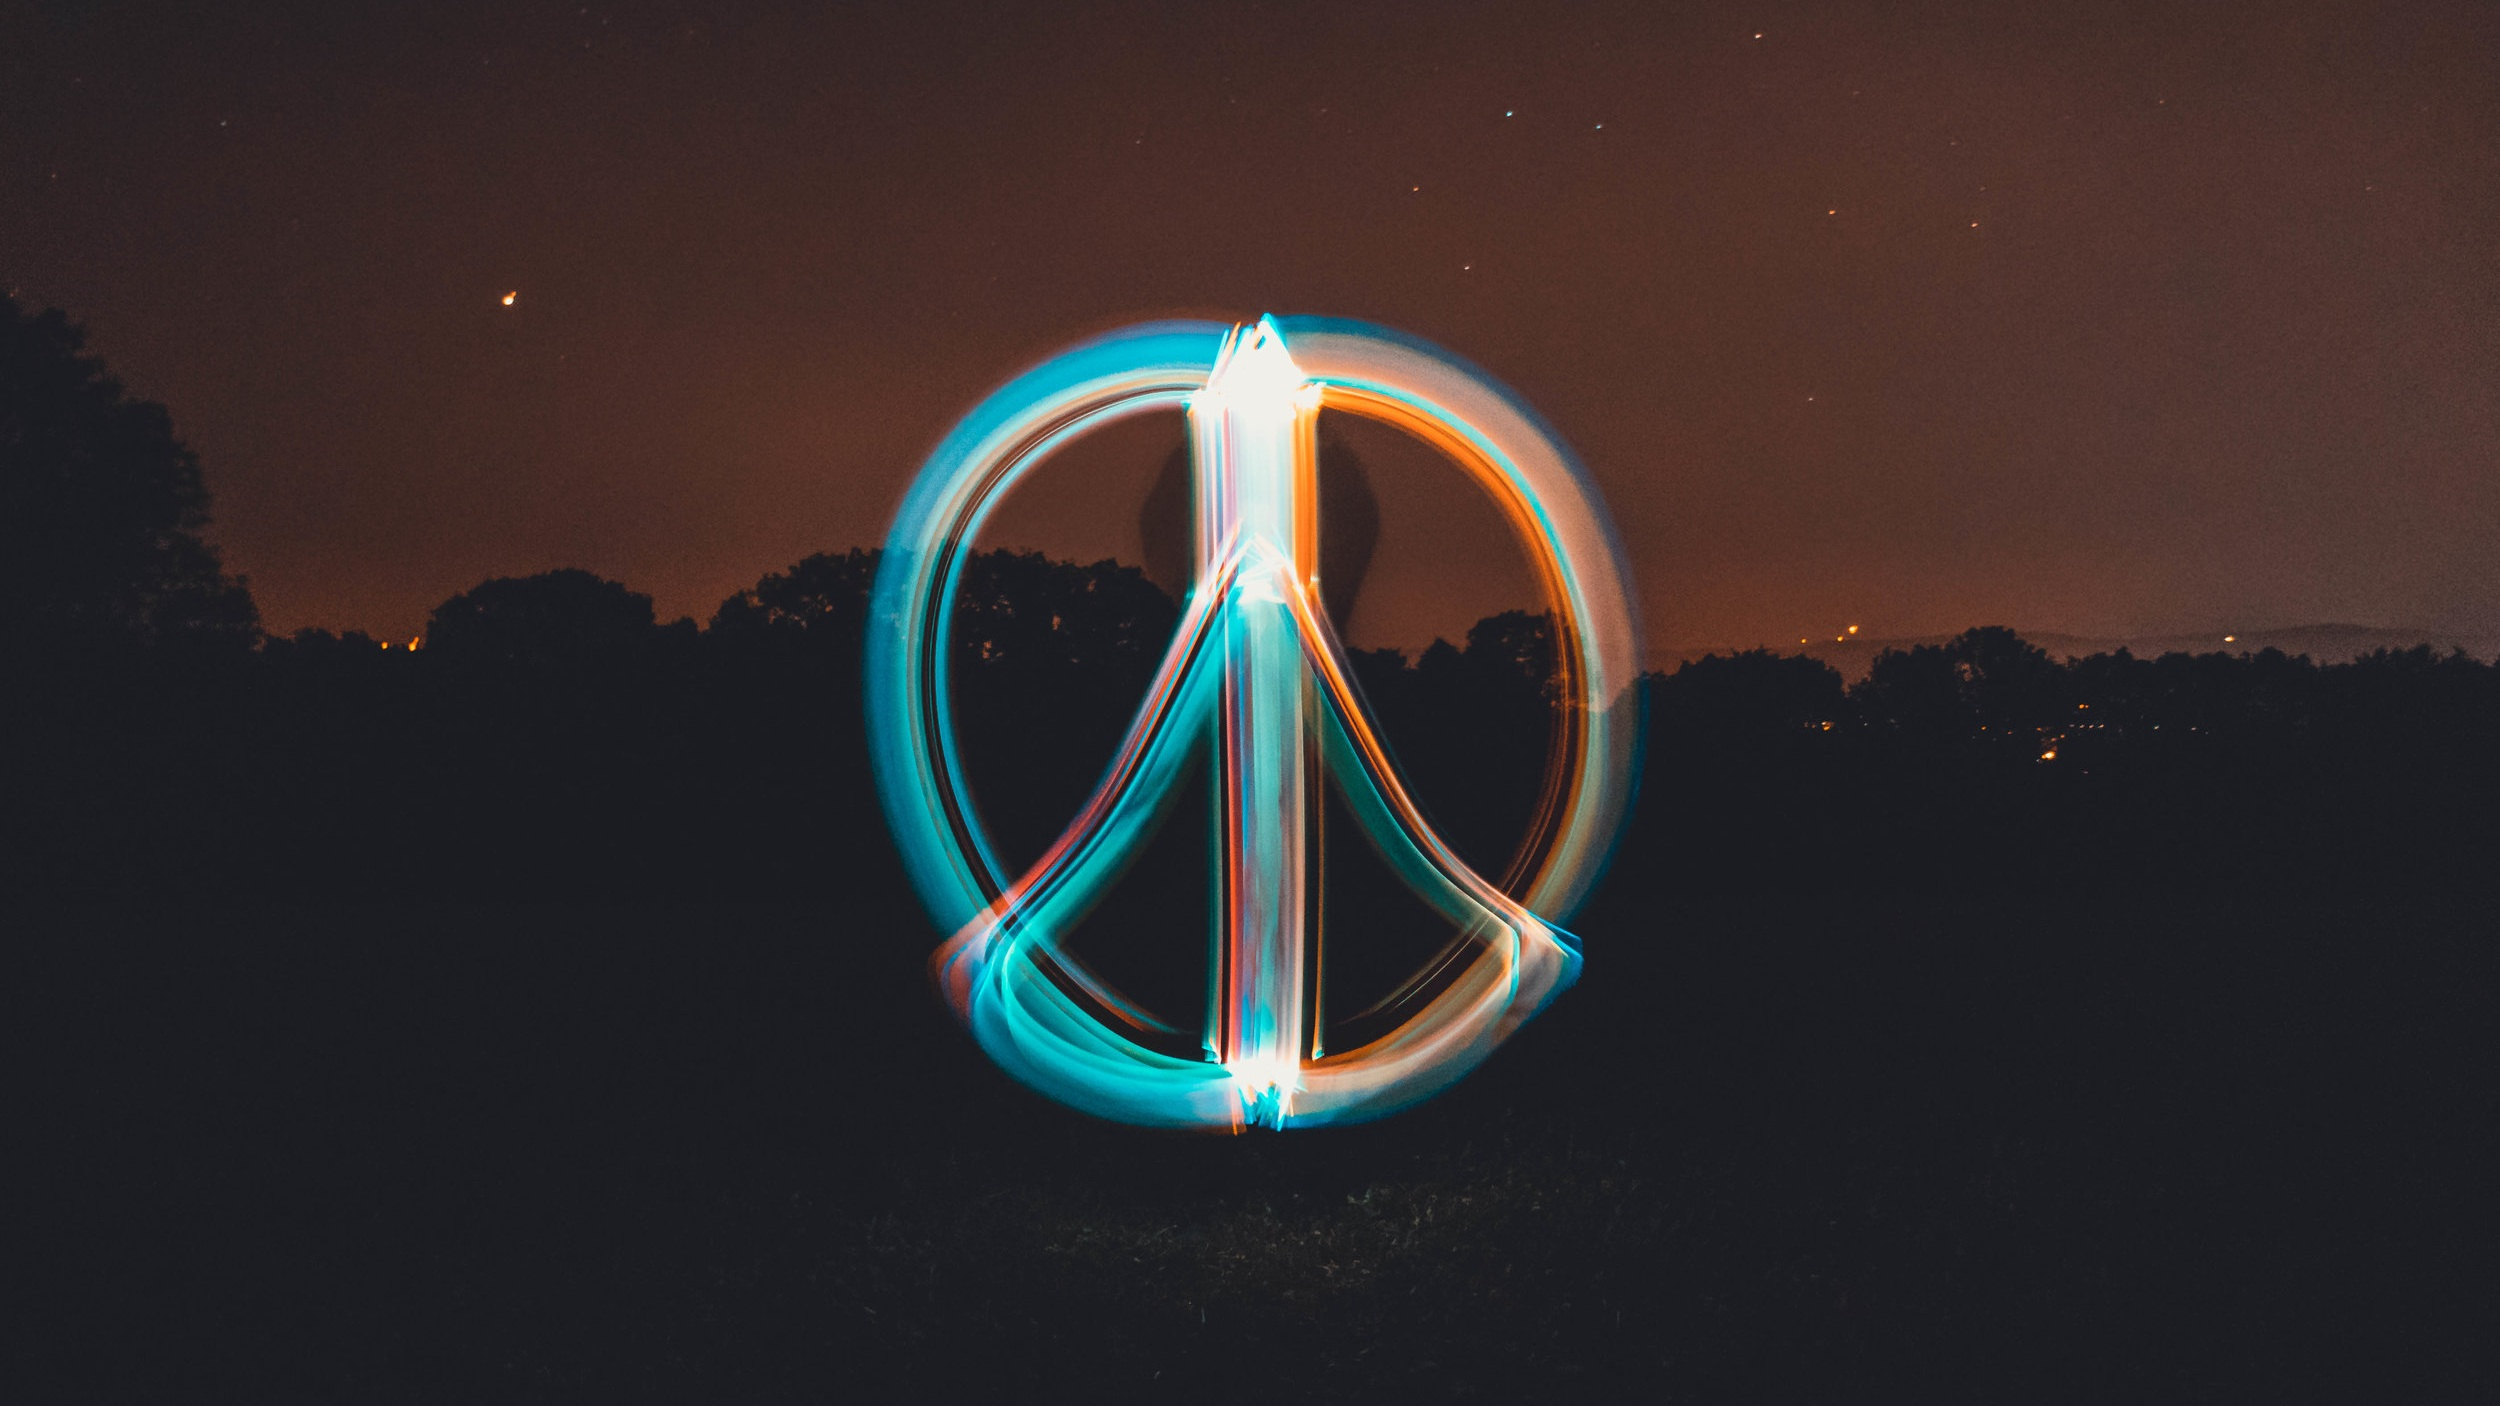 Peace Resources - Books, Films, Blogs, and Organizations